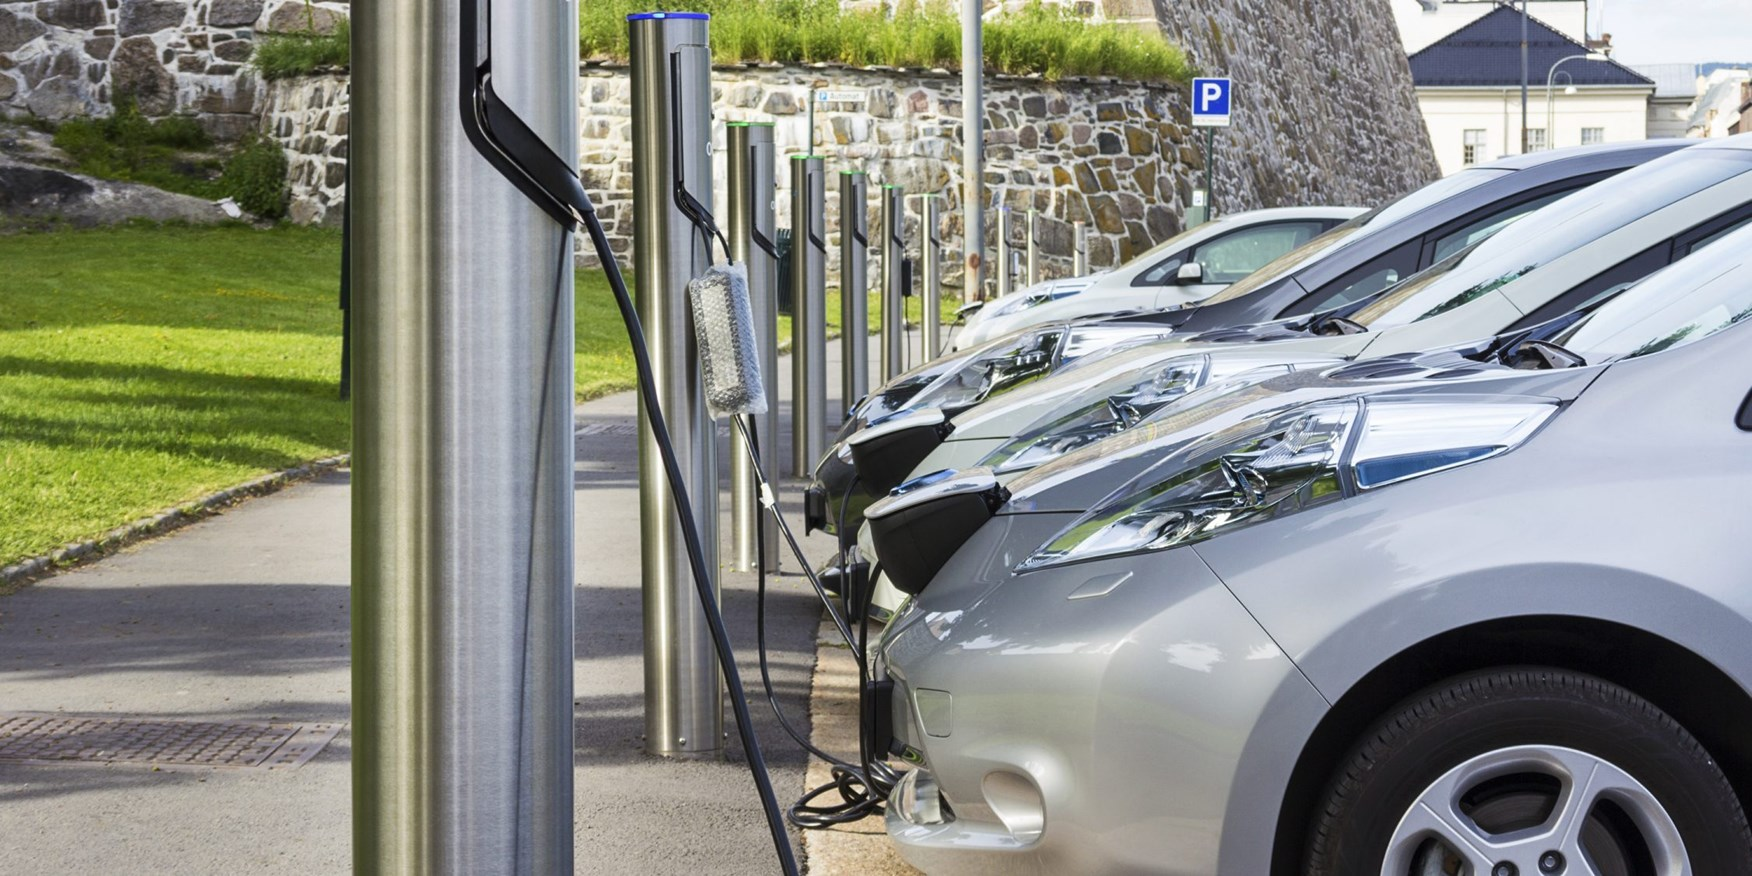 Electric Vehicle Charging Points Market is Thriving Worldwide to Generate Massive Revenue